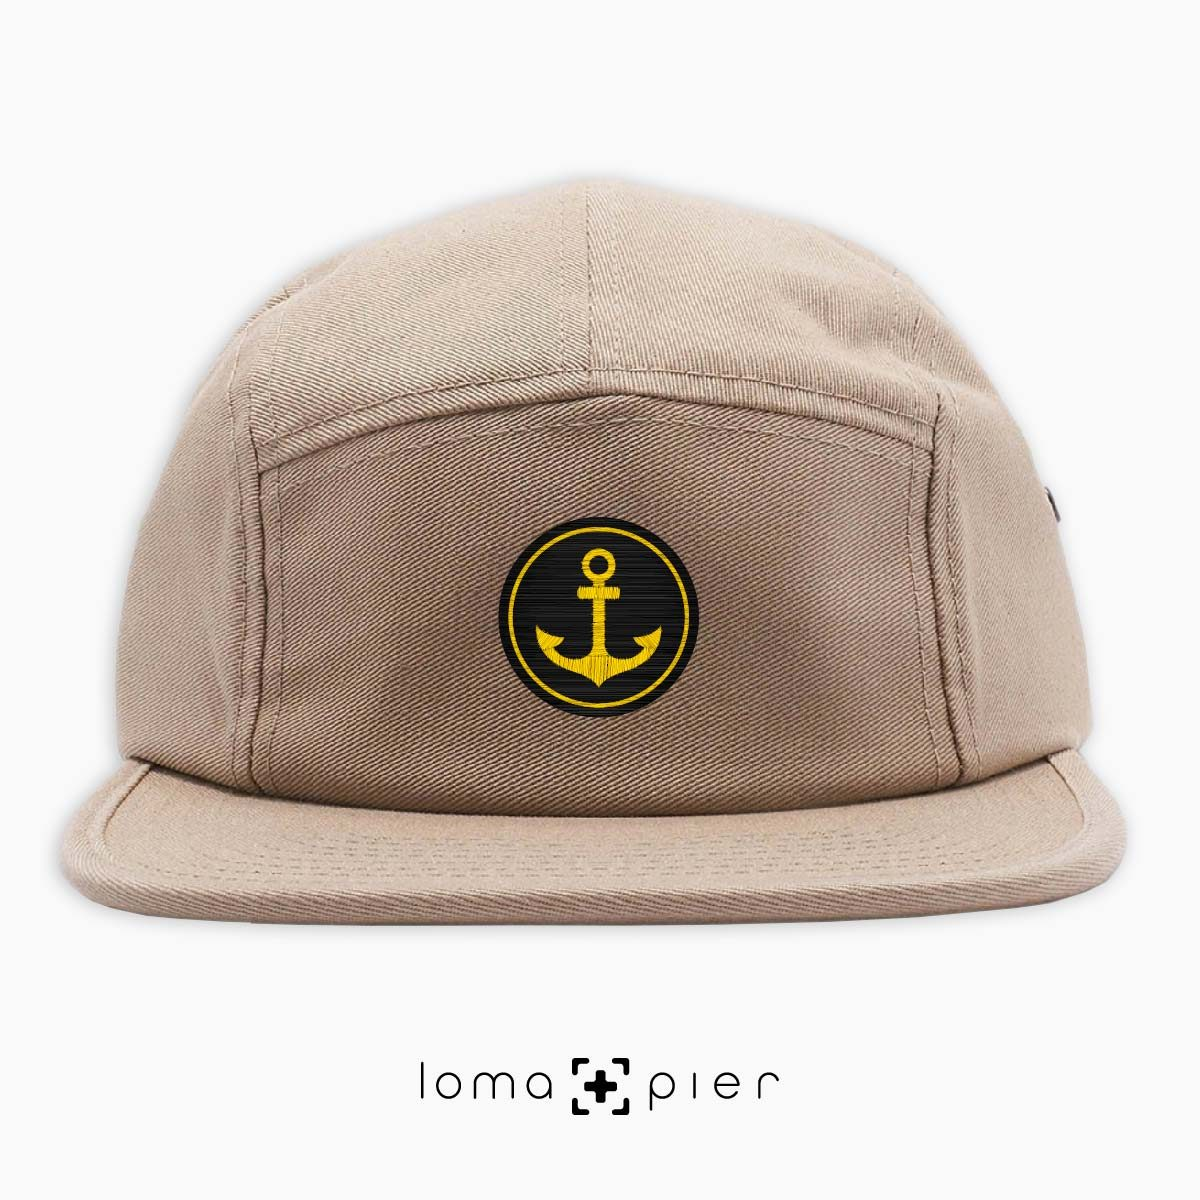 ANCHOR icon 5-panel hat in khaki by loma+pier hat store